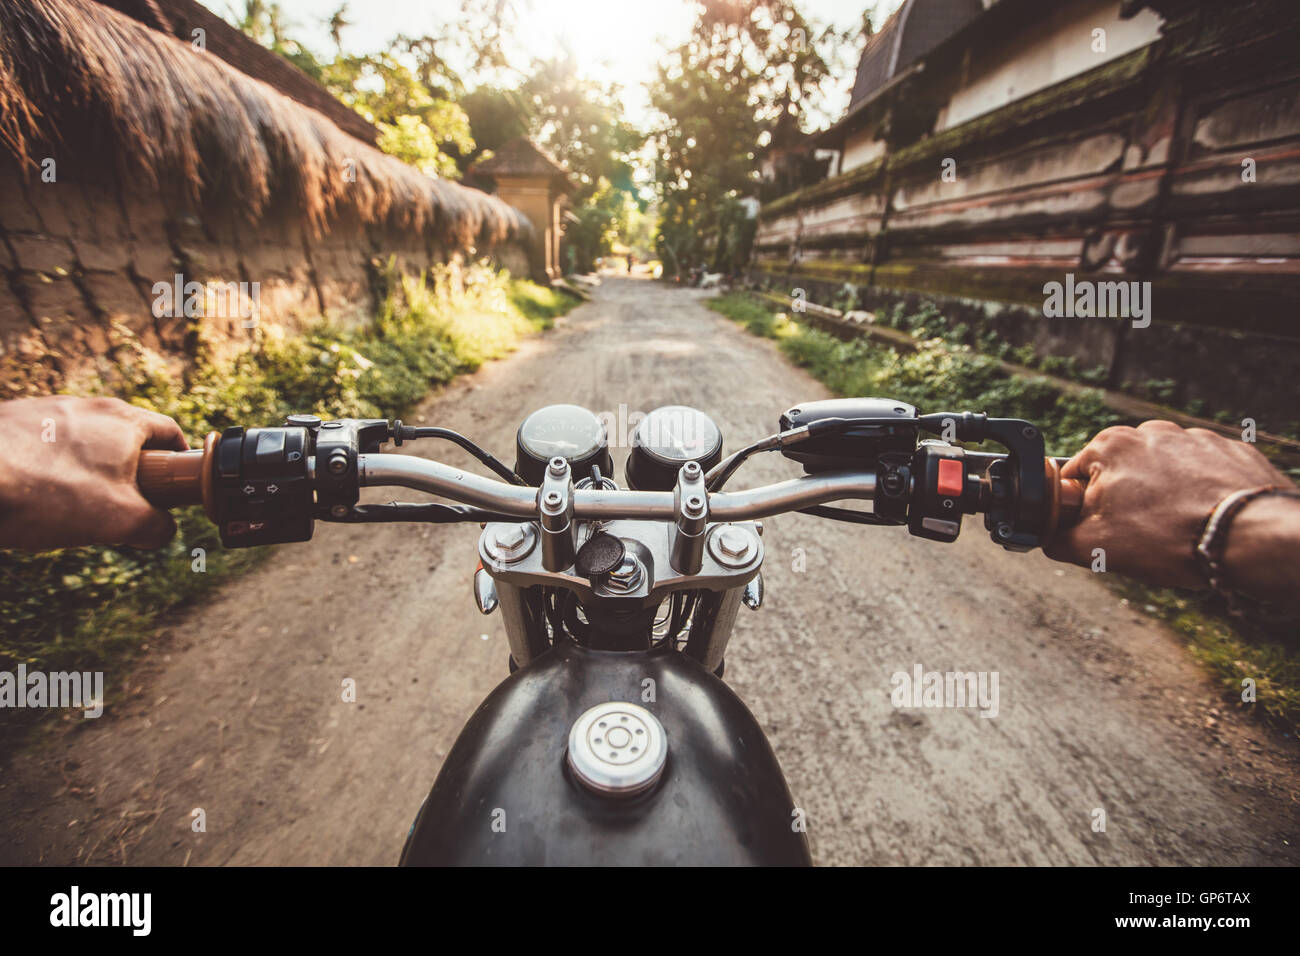 Biker driving his motorcycle on country road in a village. Point of view with focus is on the handlebar and man - Stock Image